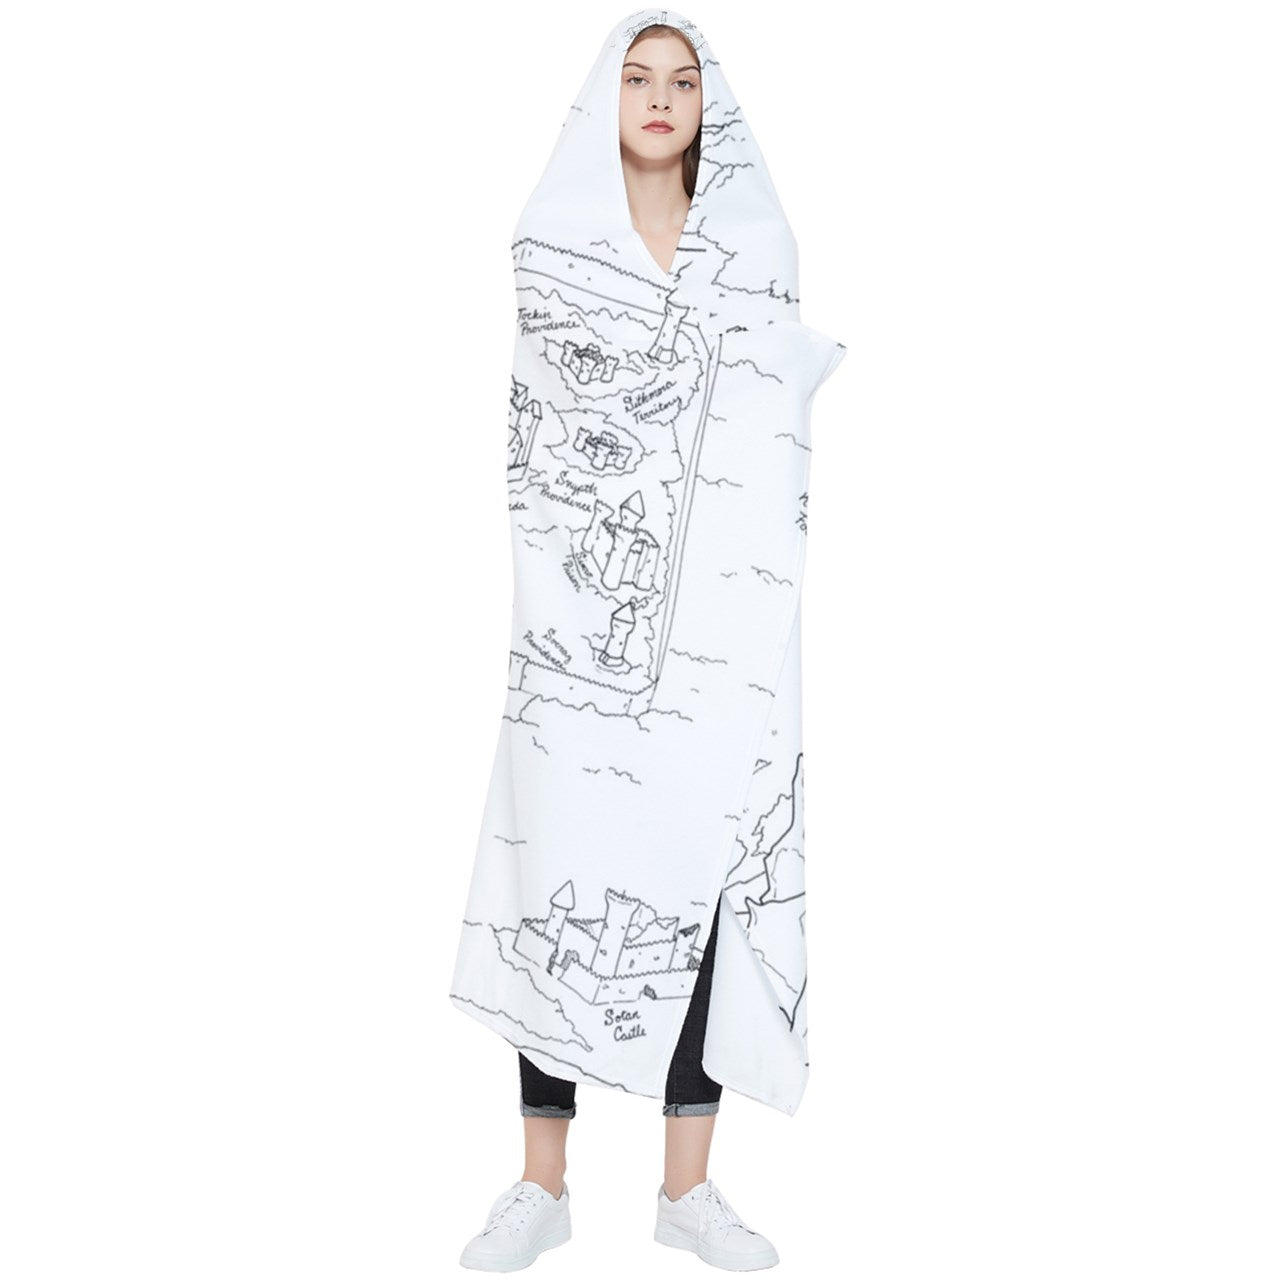 TCoE - Trindavin Map - Wearable Blanket (Adult)